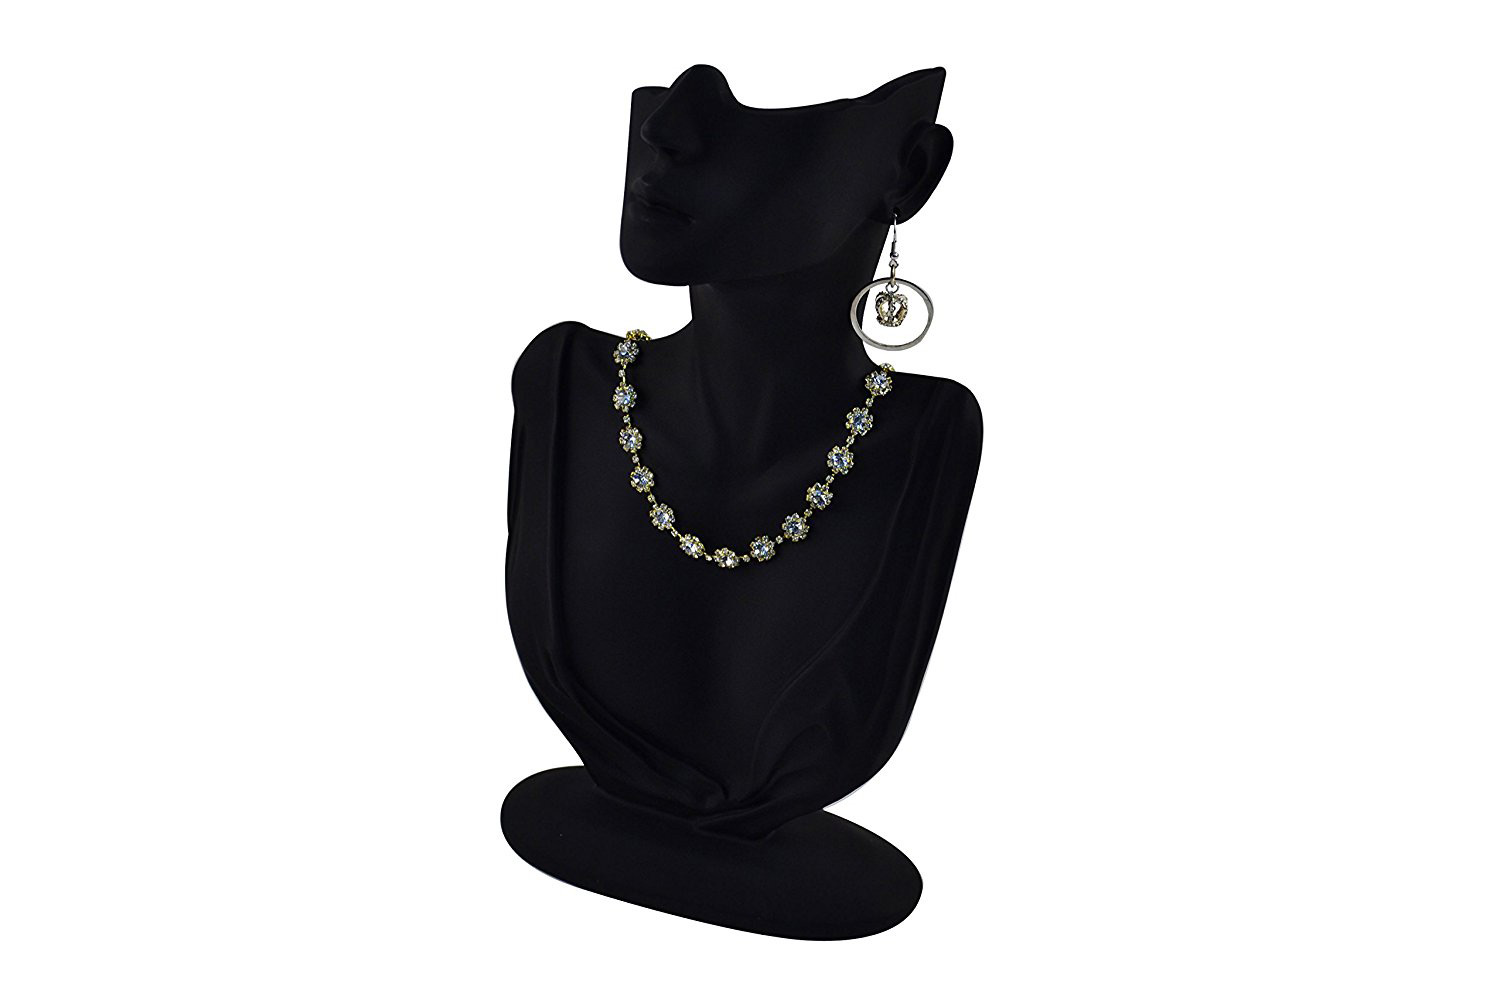 Elegant Black Mannequin Jewelry Holder Bust